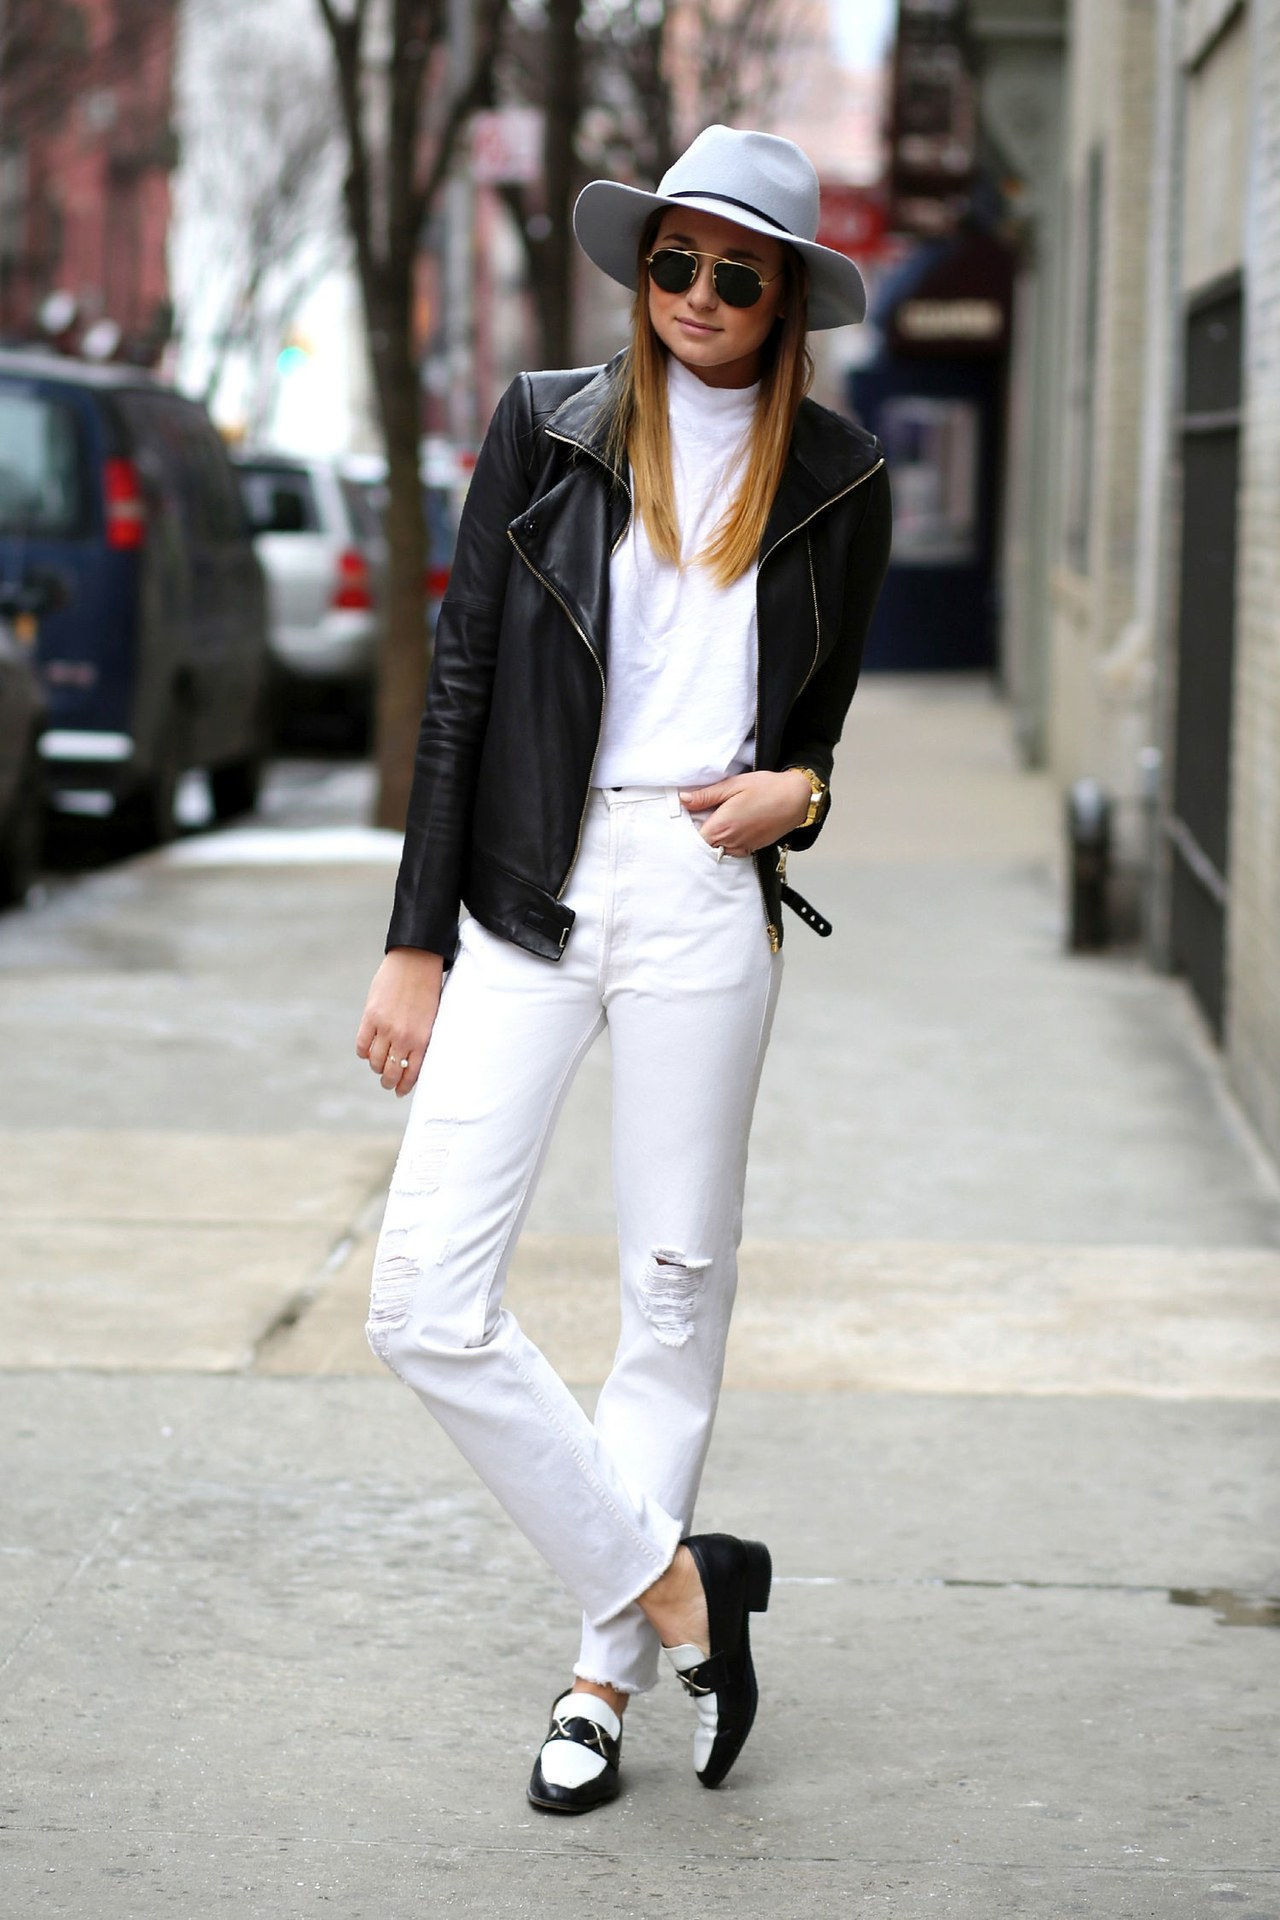 pudota winter white jeans we wore what